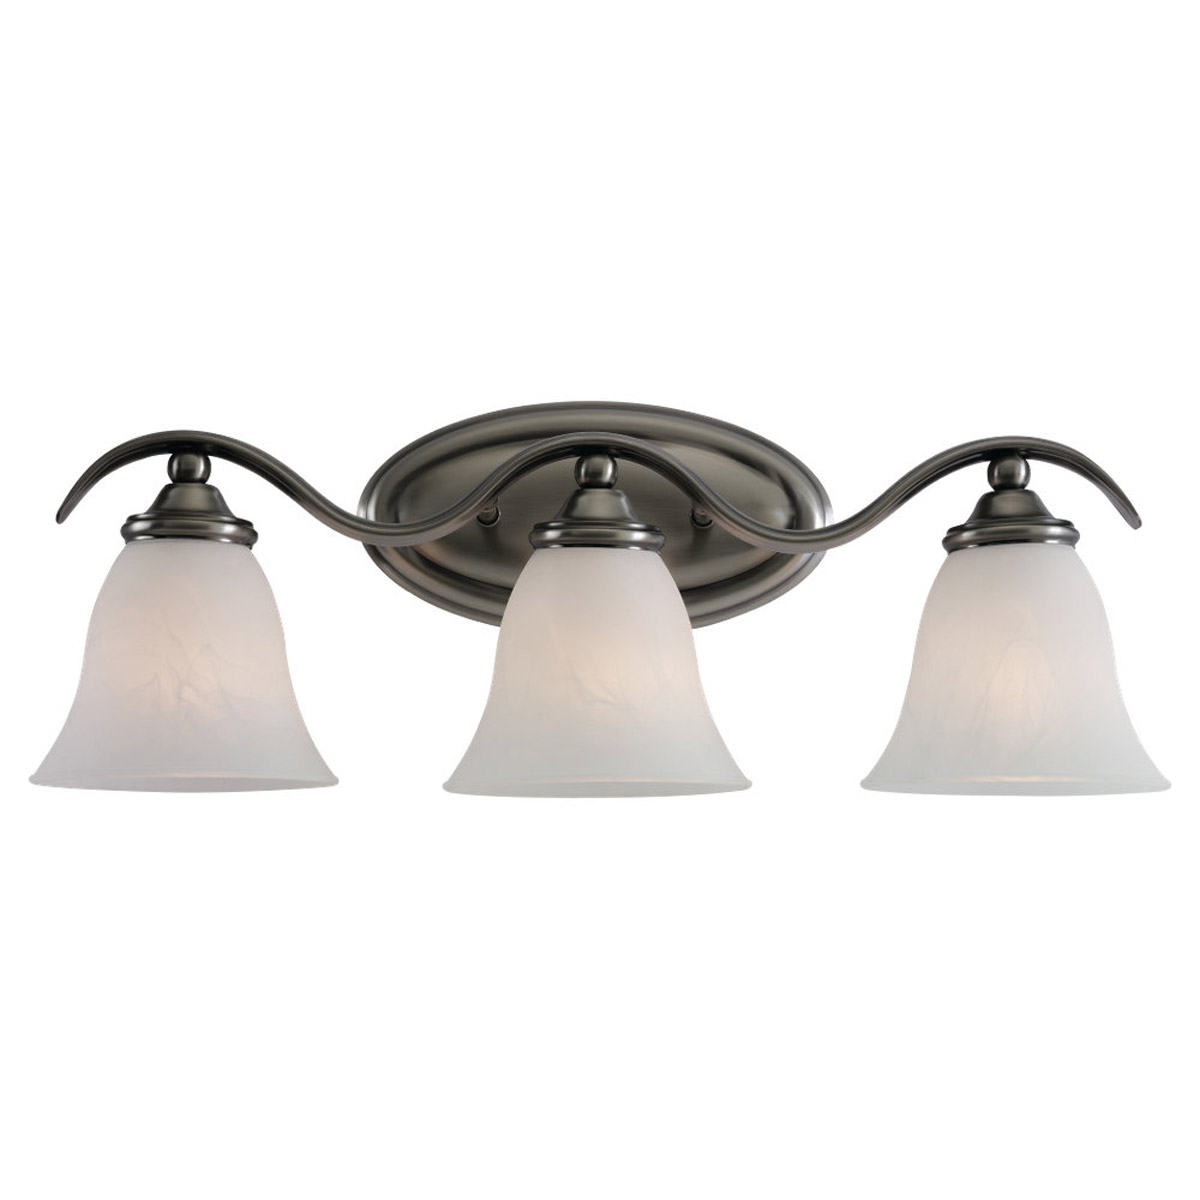 Sea Gull Lighting Rialto 3 Light Bath Vanity in Antique Brushed Nickel 44361-965